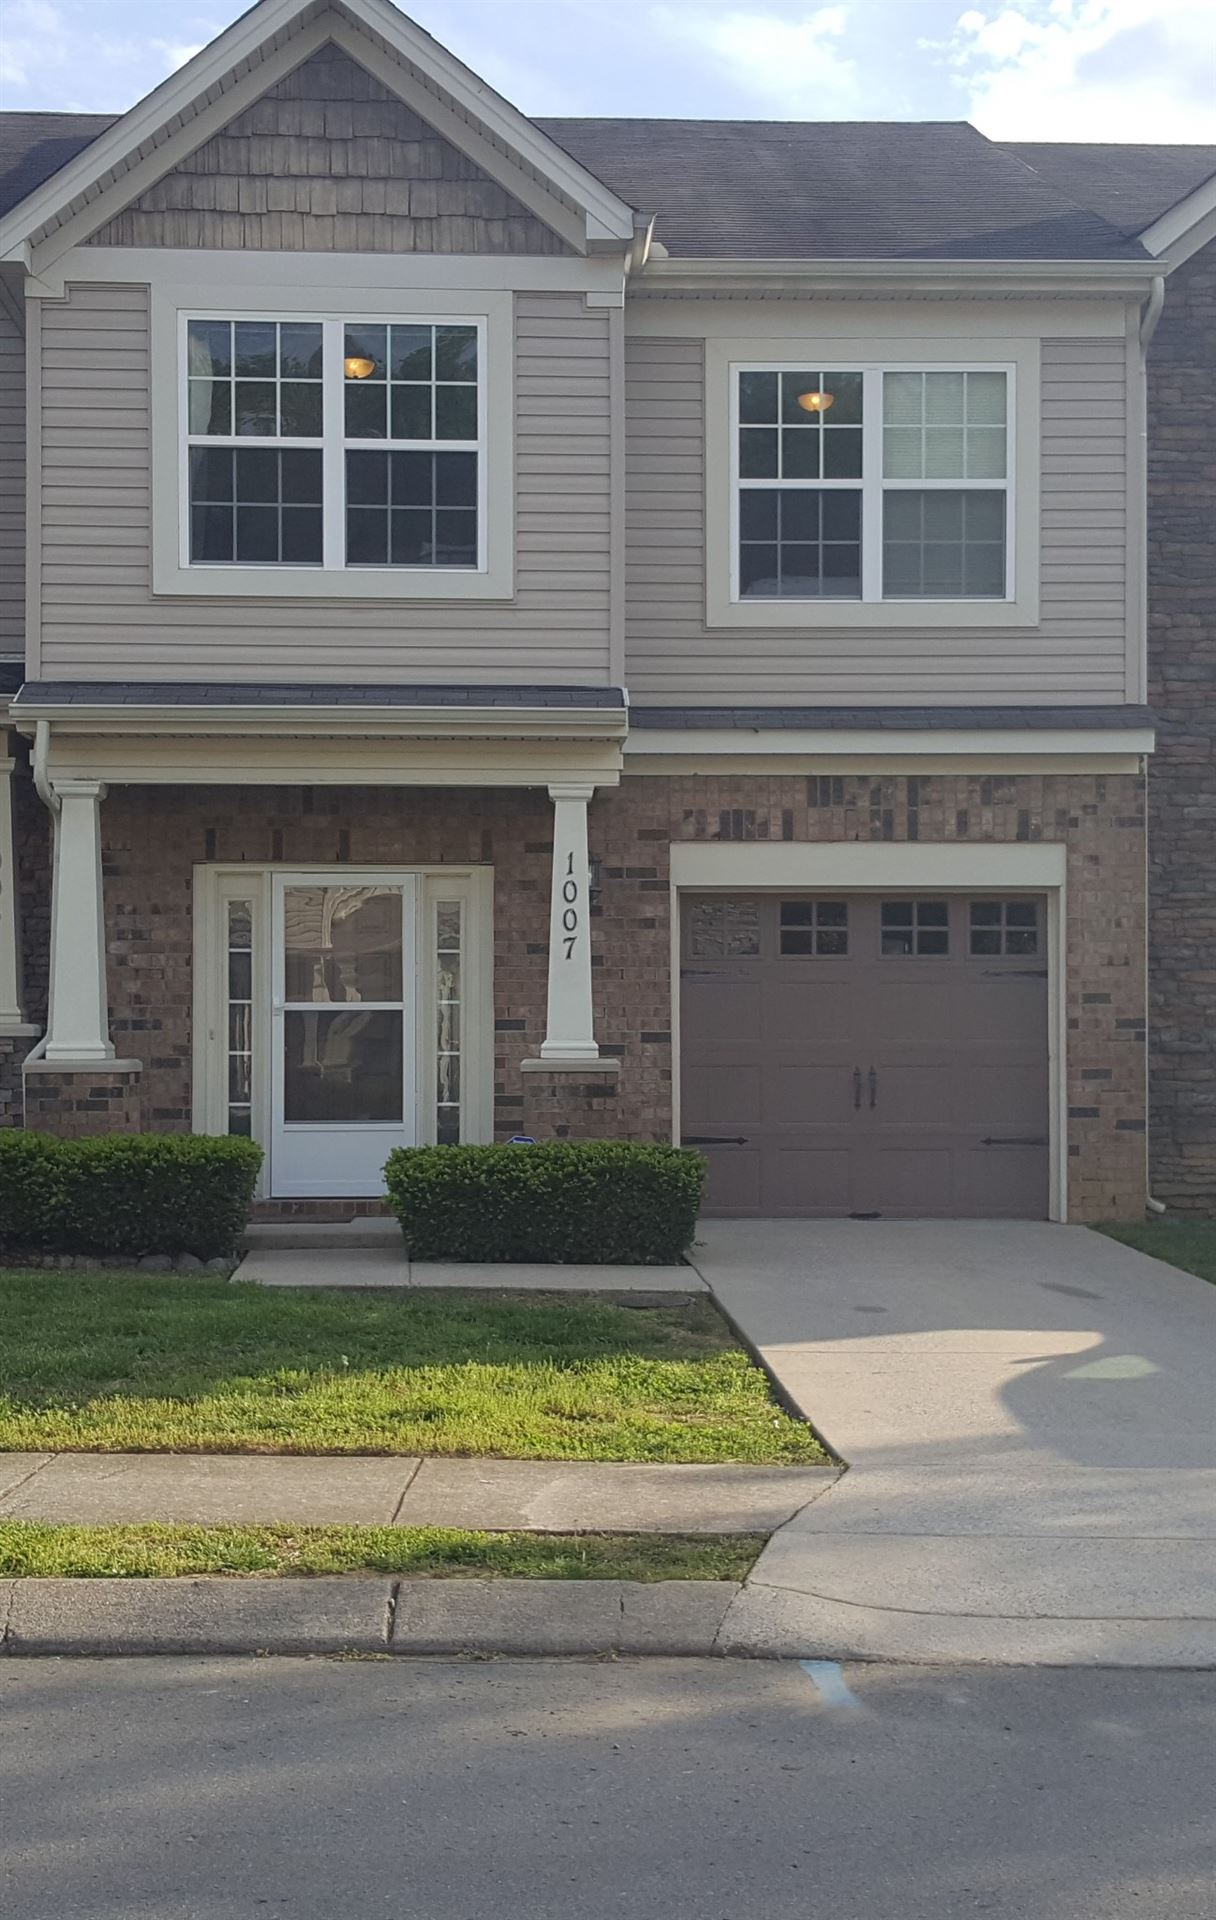 1007 Chatsworth Dr, Old Hickory, TN 37138 - MLS#: 2294202